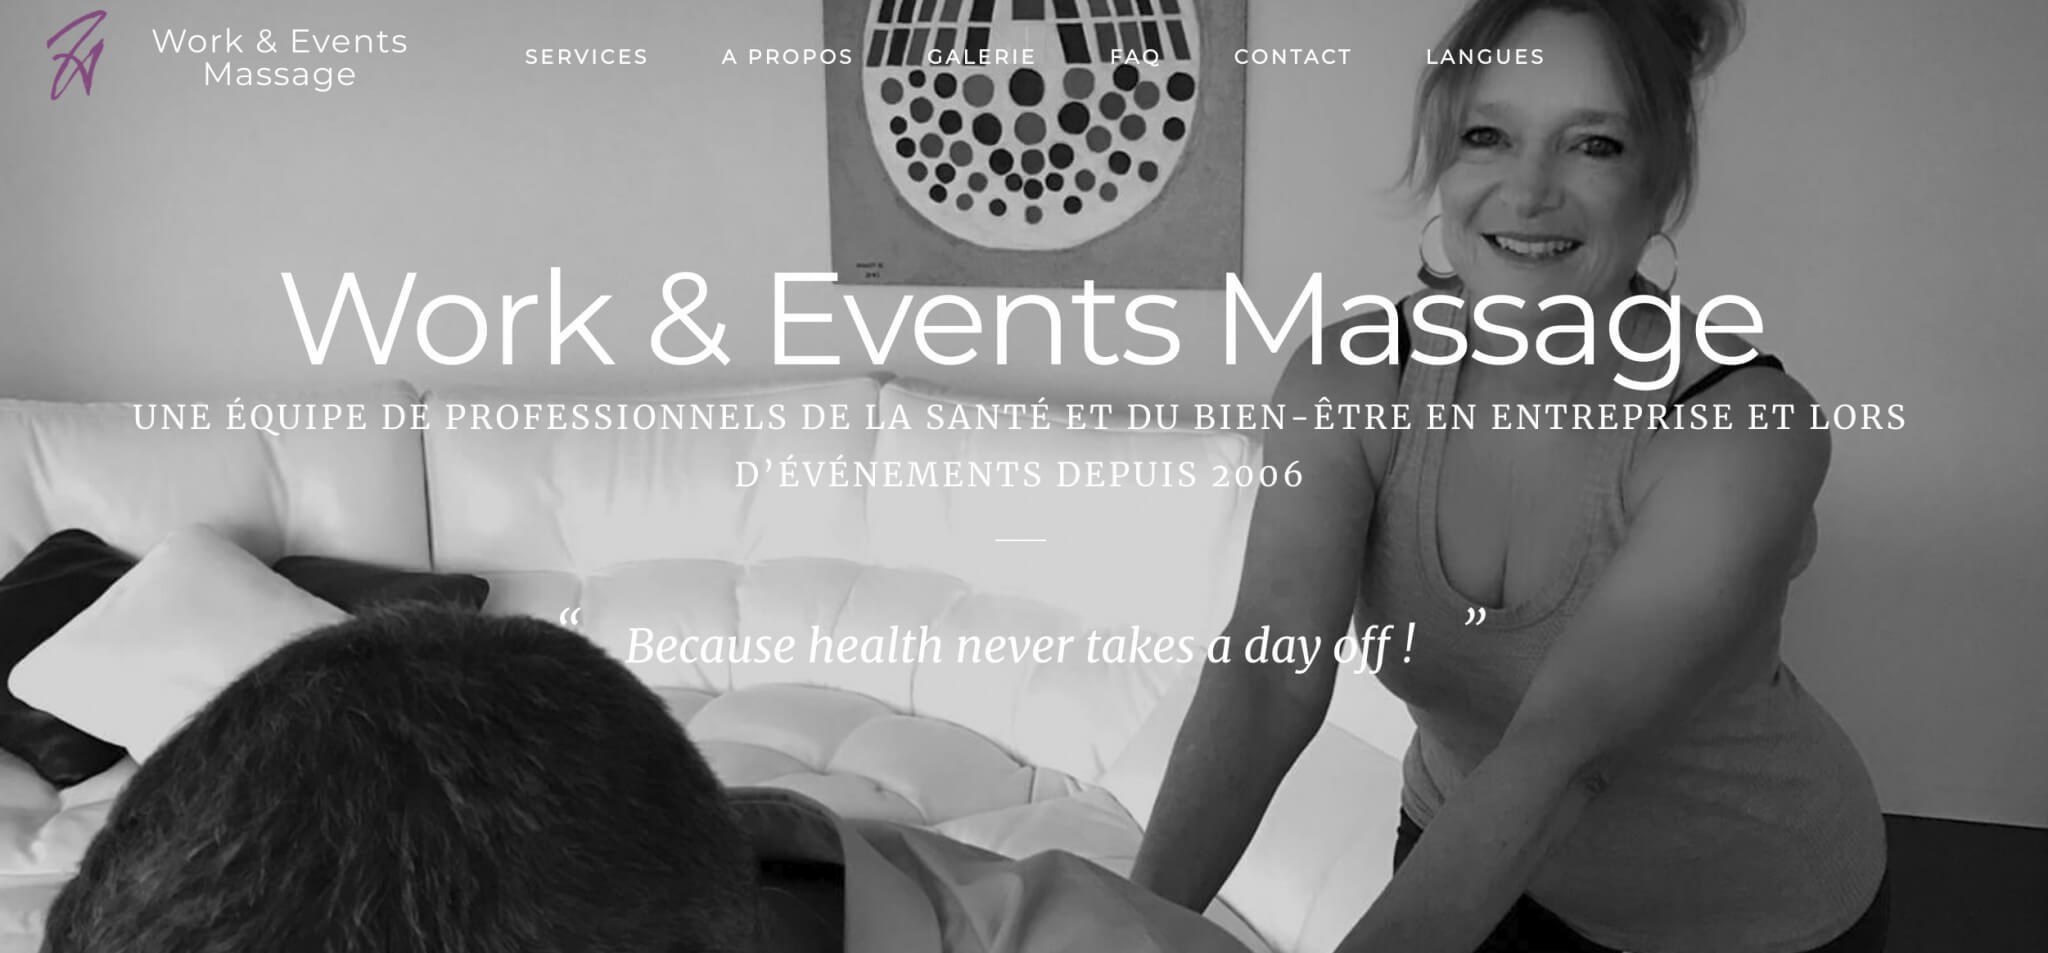 work and event massage home